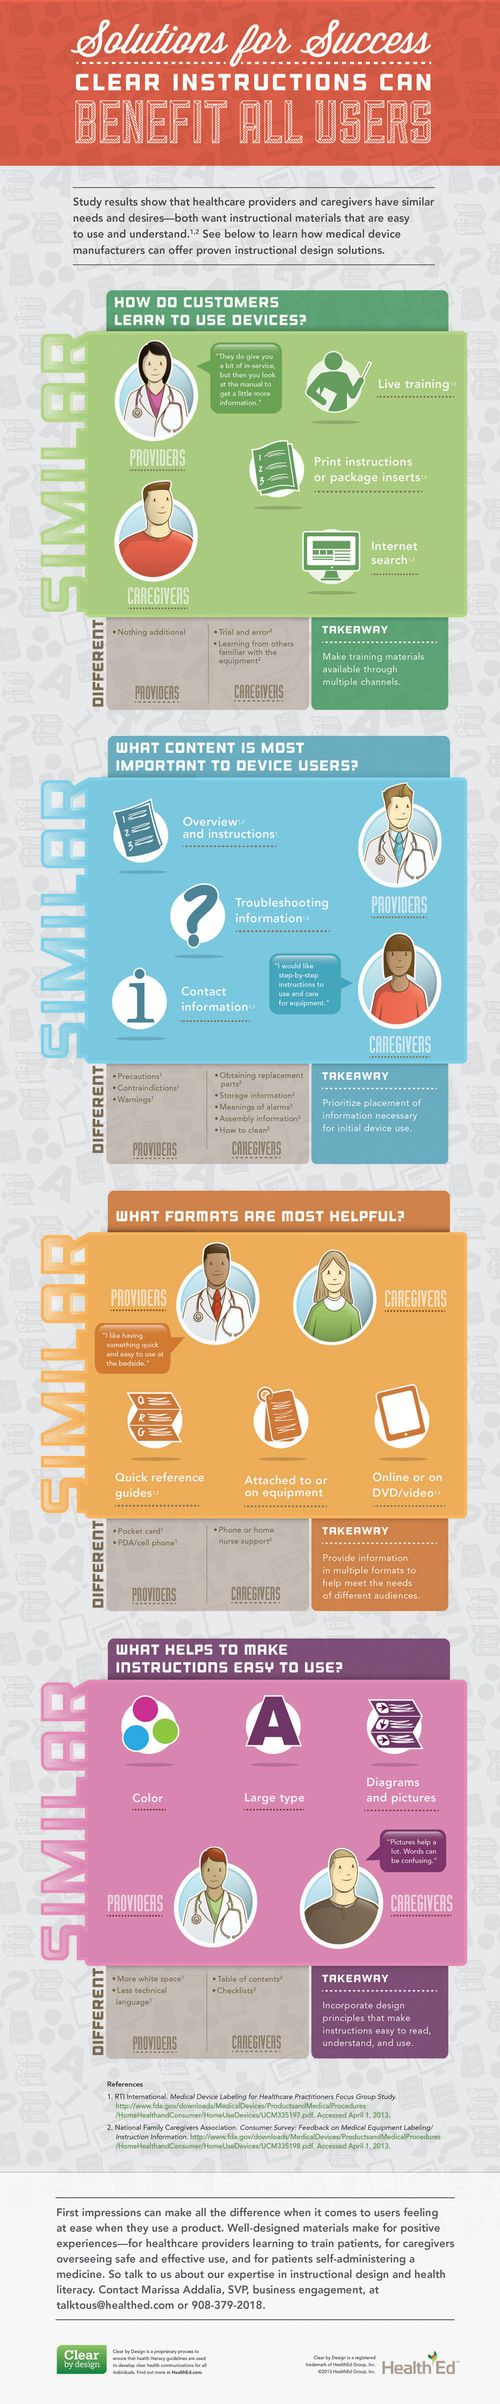 HealthEd_clear_instructions_for_use_infographic_blog